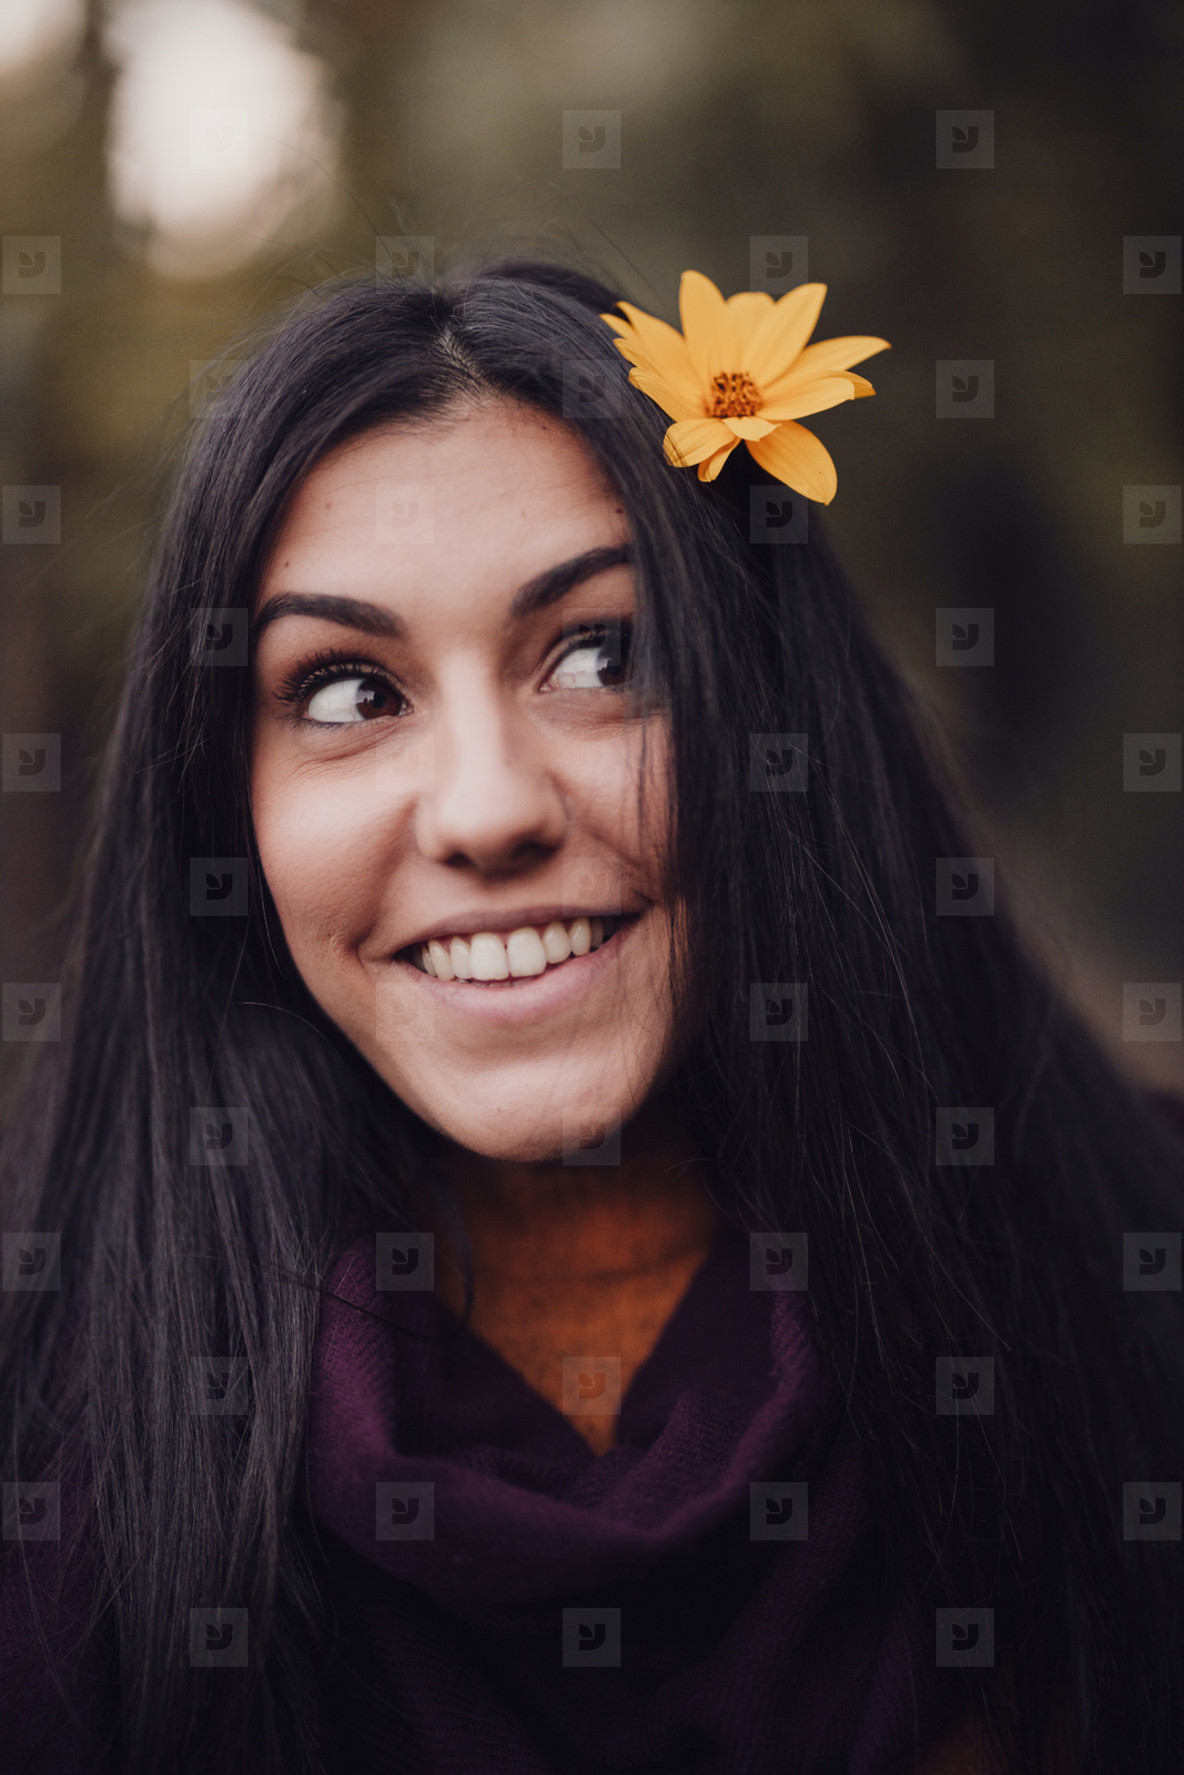 Woman portrait with yellow flower in her hair